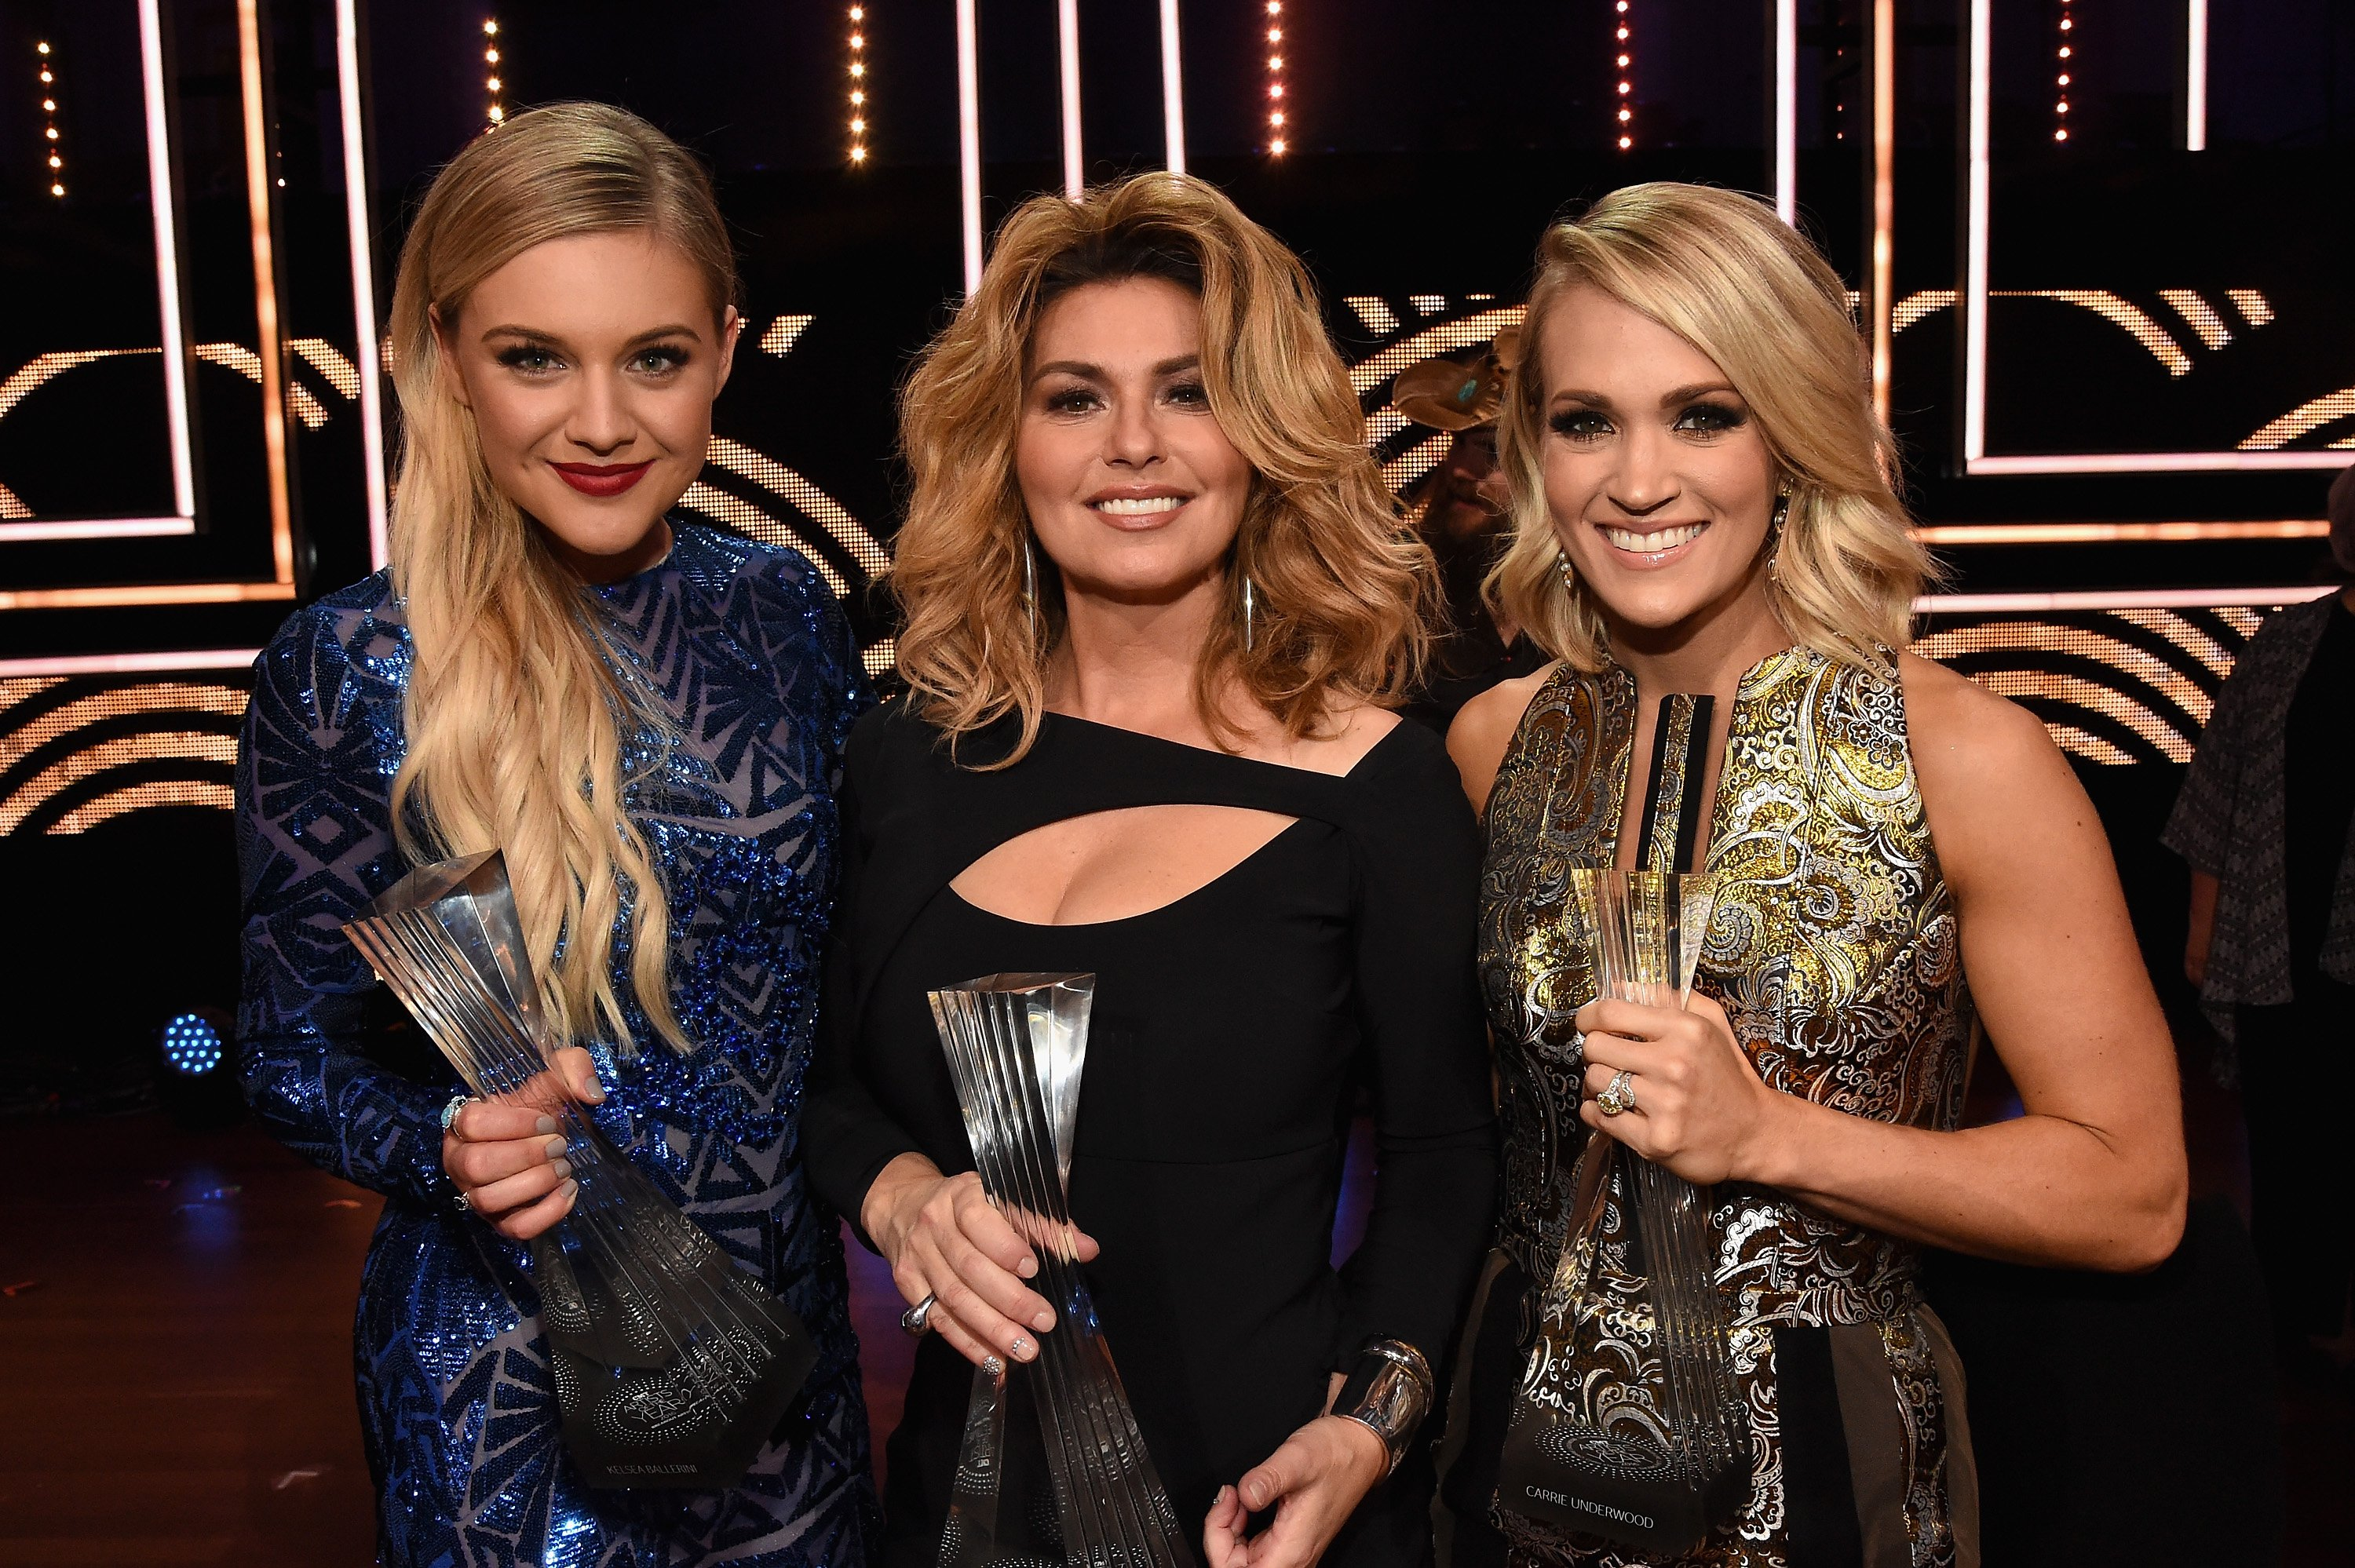 Honorees Kelsea Ballerini, Shania Twain and Carrie Underwood take photos backstage during CMT Artists of the Year 2016 on October 19, 2016 in Nashville